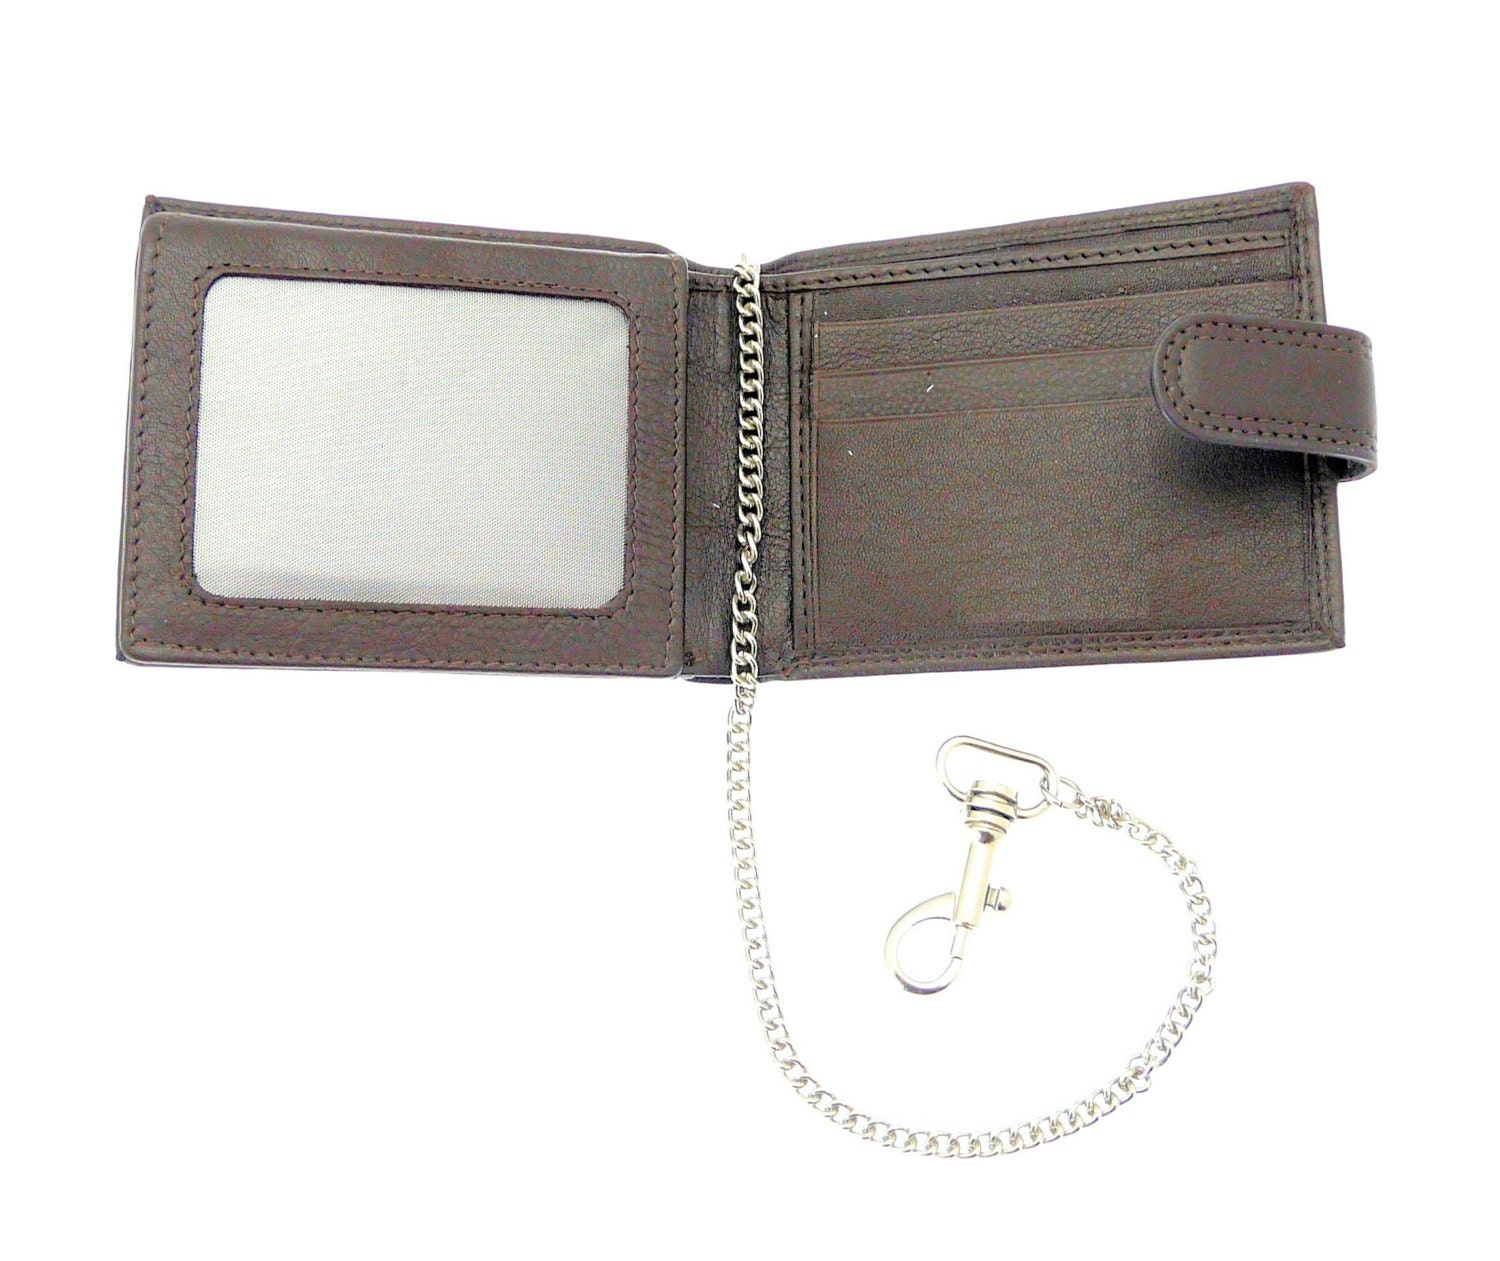 Premium Mens Soft Leather Key Chain Wallet and Credit Card Holder  Holds 9 Credit Cards 1 ID Card  Notes  Brown Leather.  EE017BBROWN